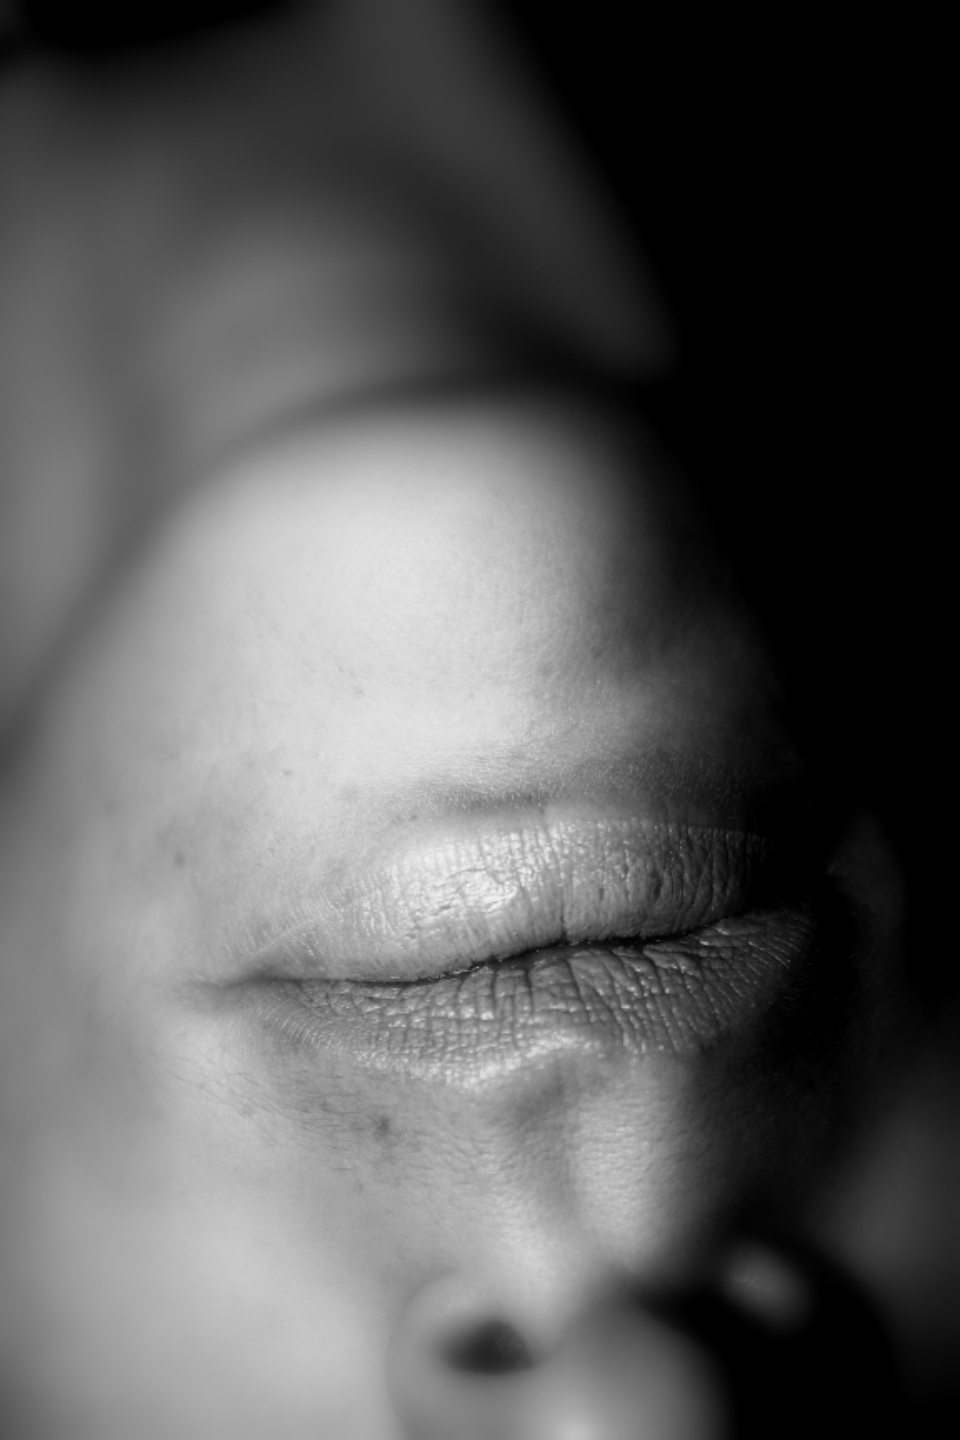 lips close up person